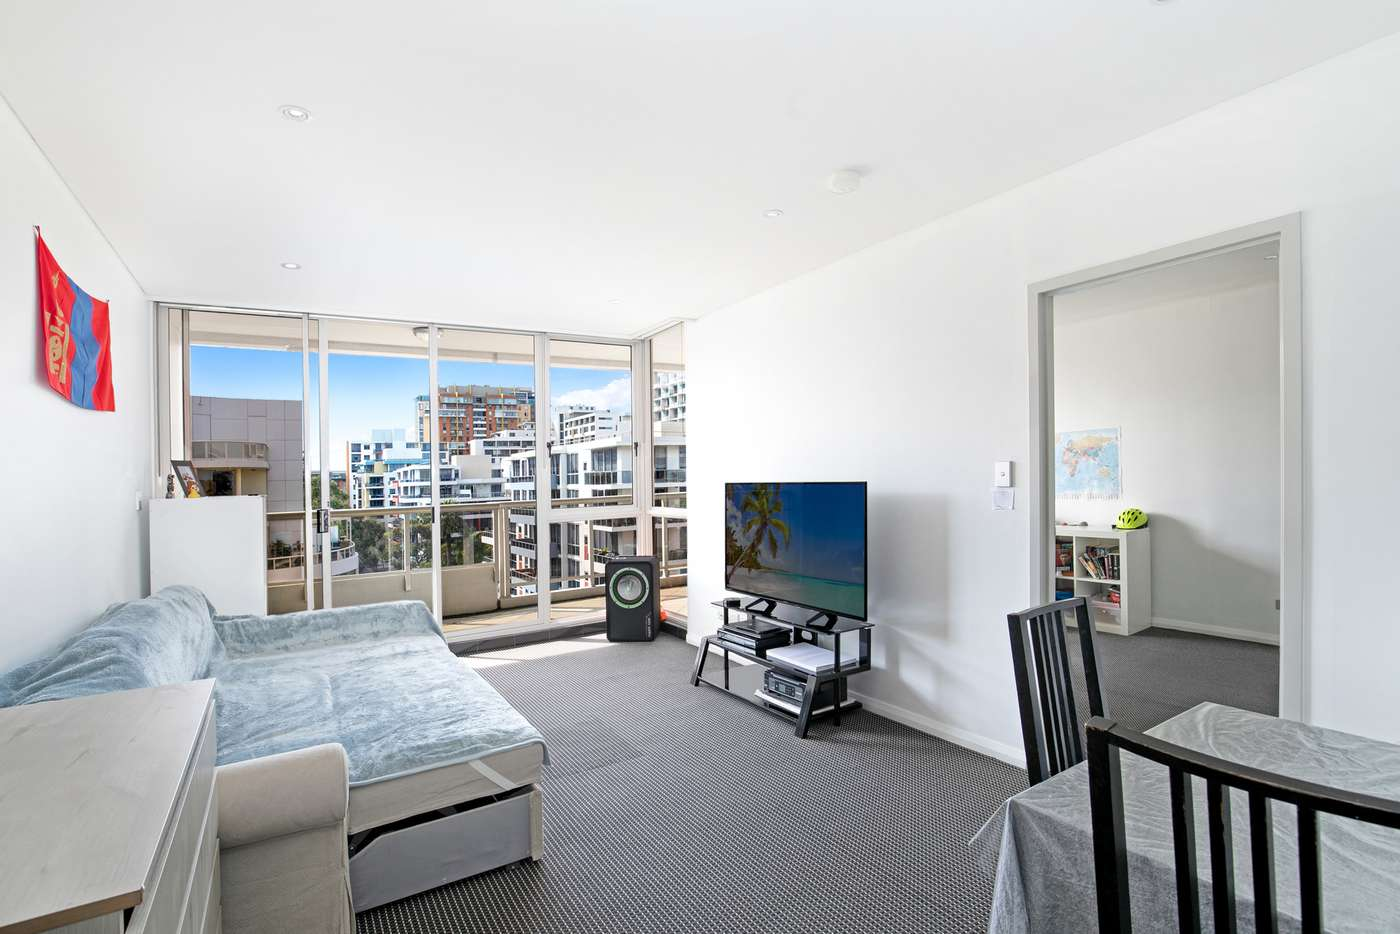 Main view of Homely apartment listing, 223/11 Potter Street, Waterloo NSW 2017